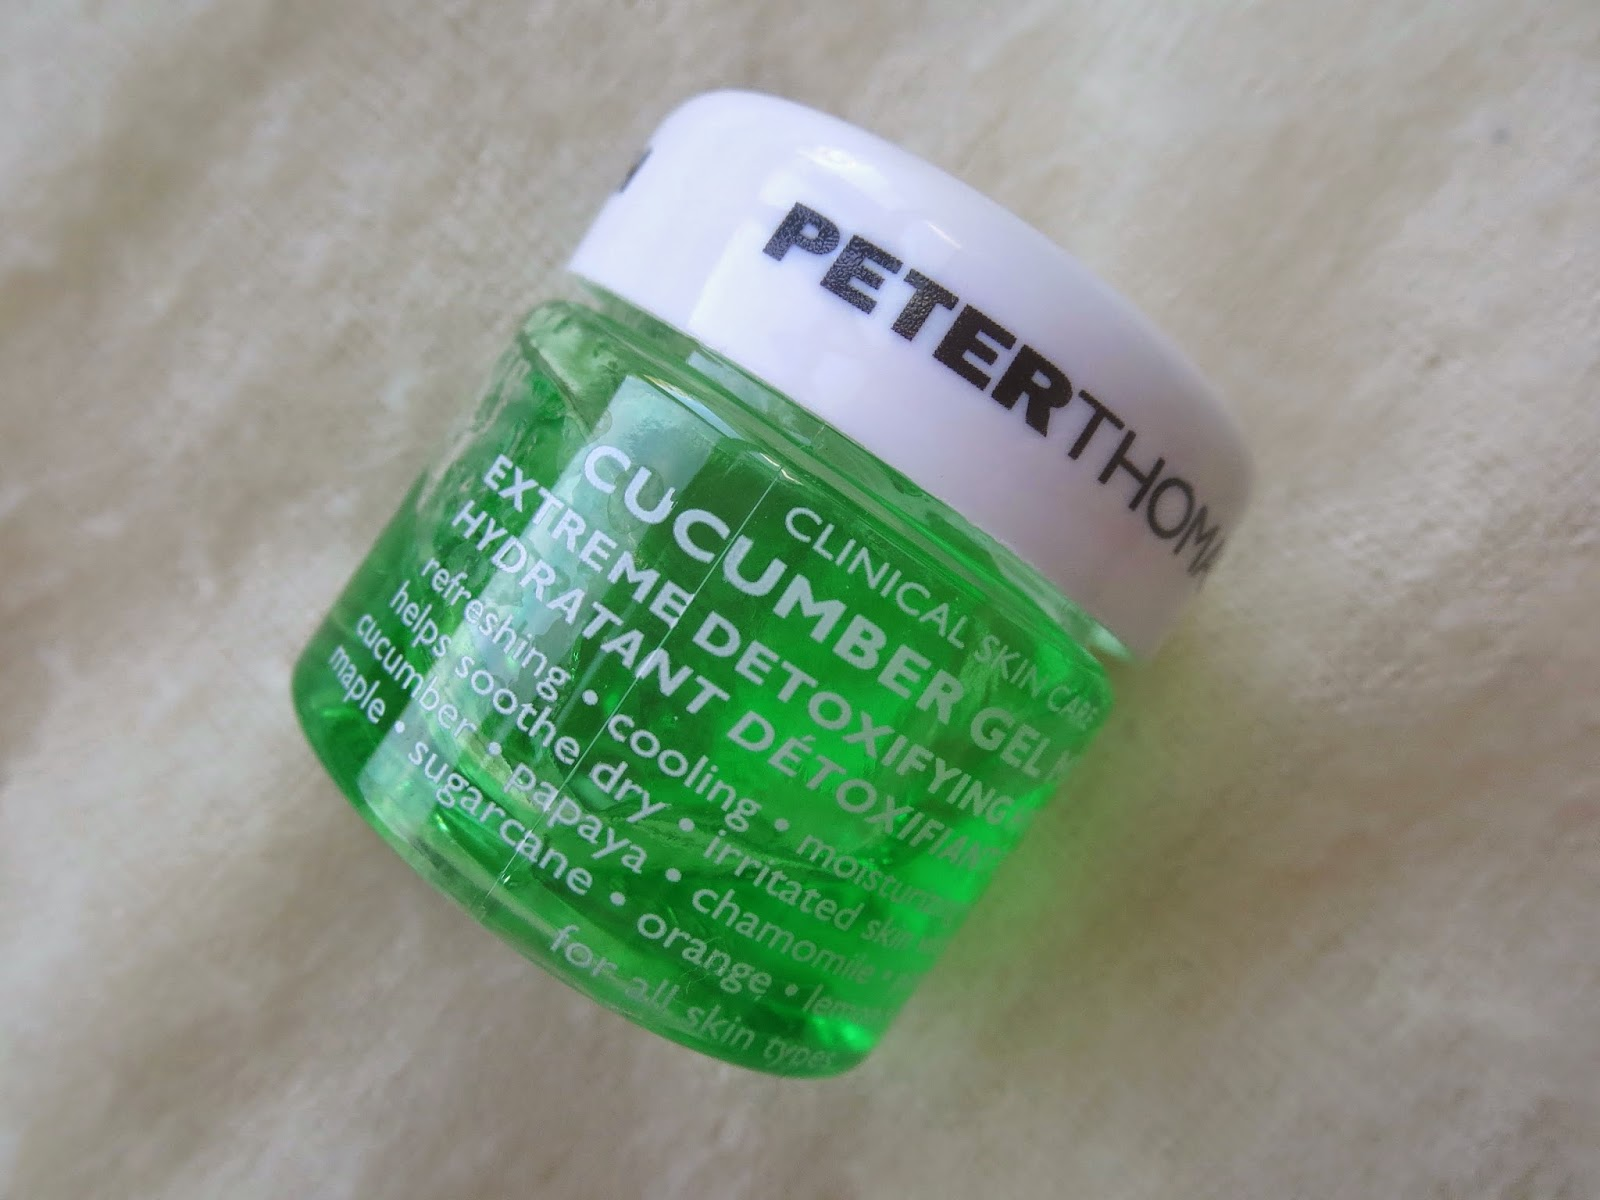 a picture of Peter Thomas Roth Cucumber Gel Mask